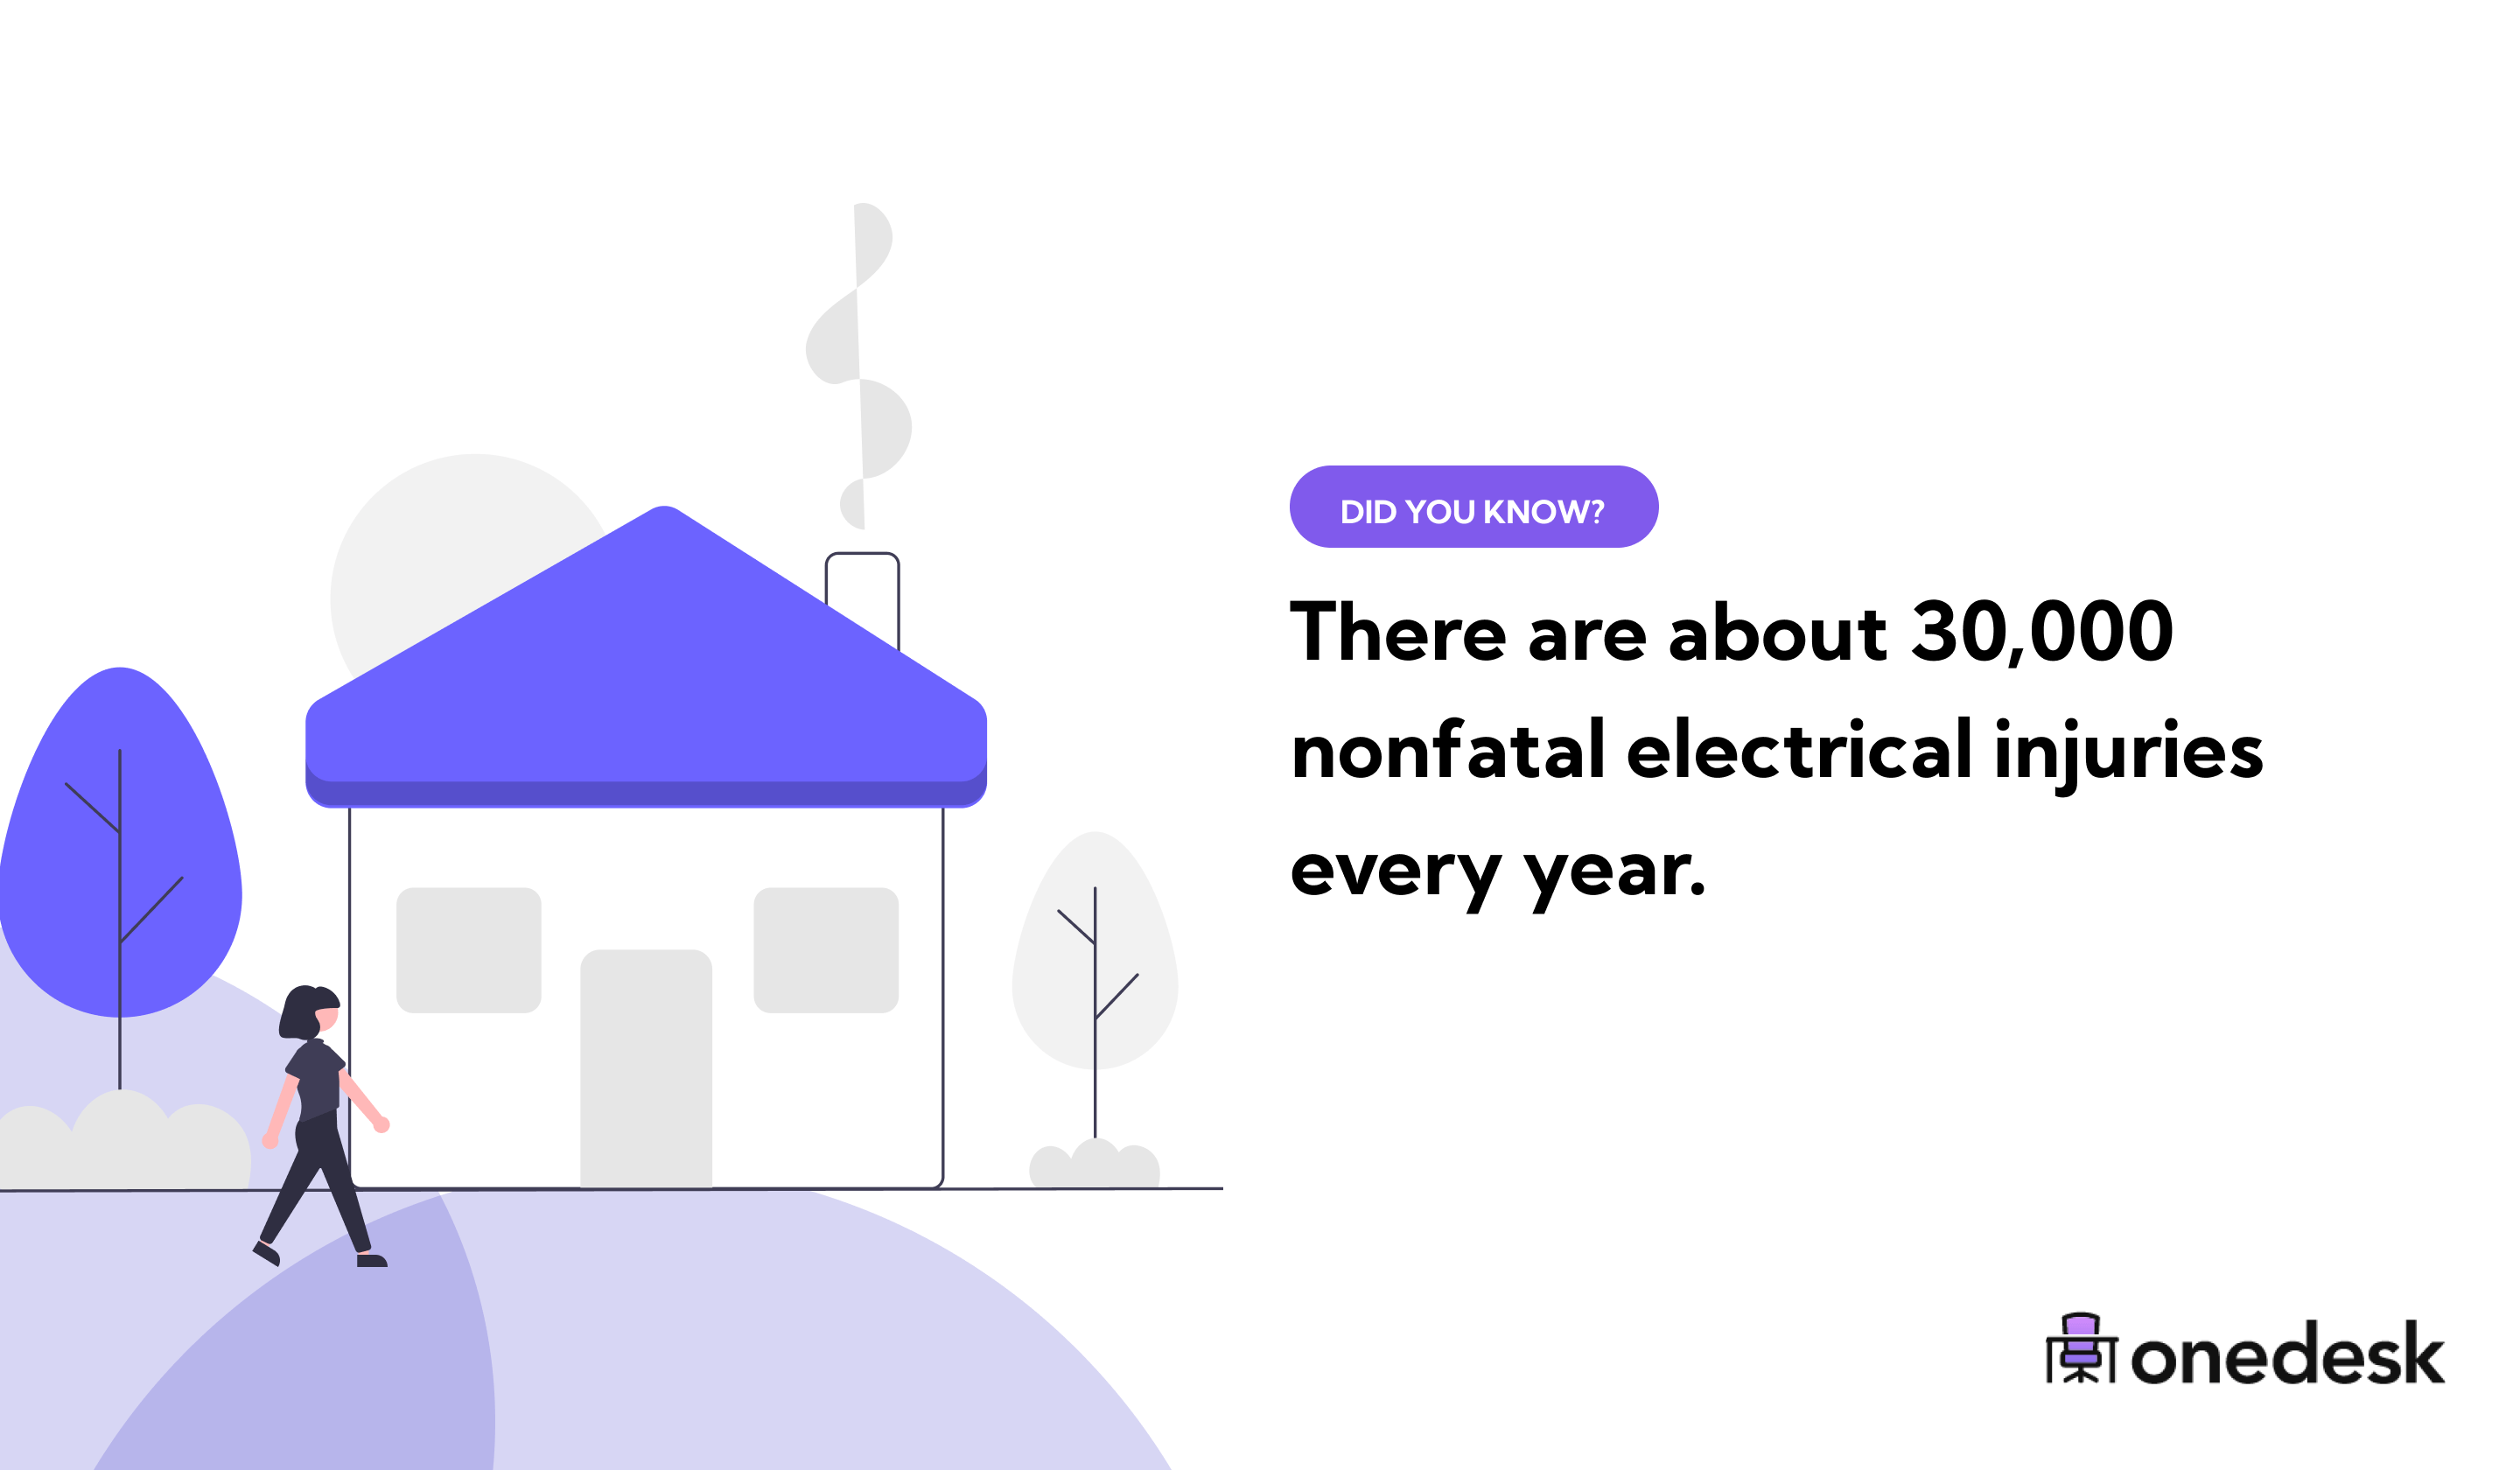 how many nonfatal electrical injuries happen every year